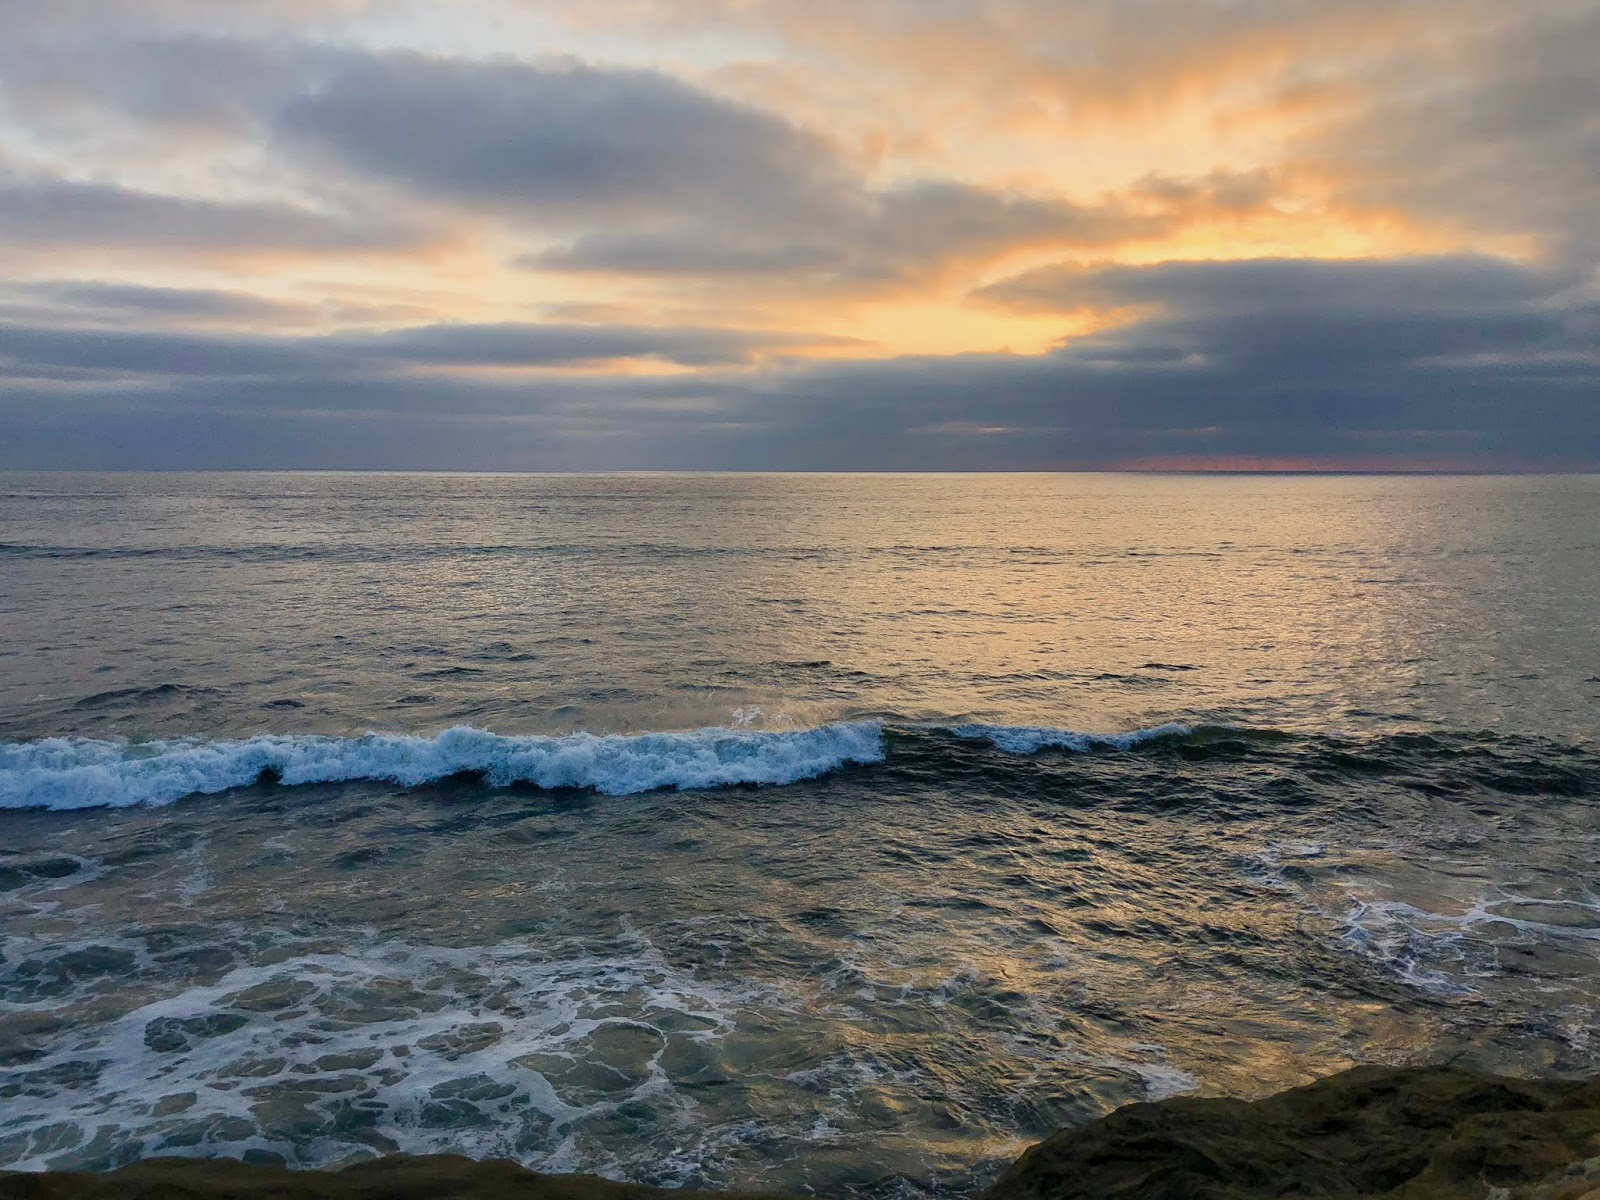 Sunset Cliffs, San Diego, California, August 2018